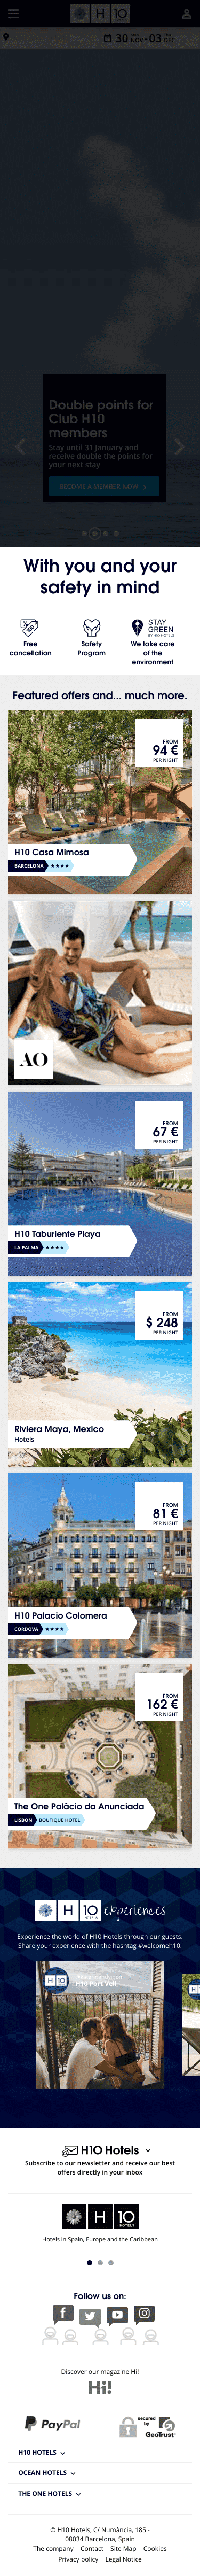 H10 Hotels US Coupon